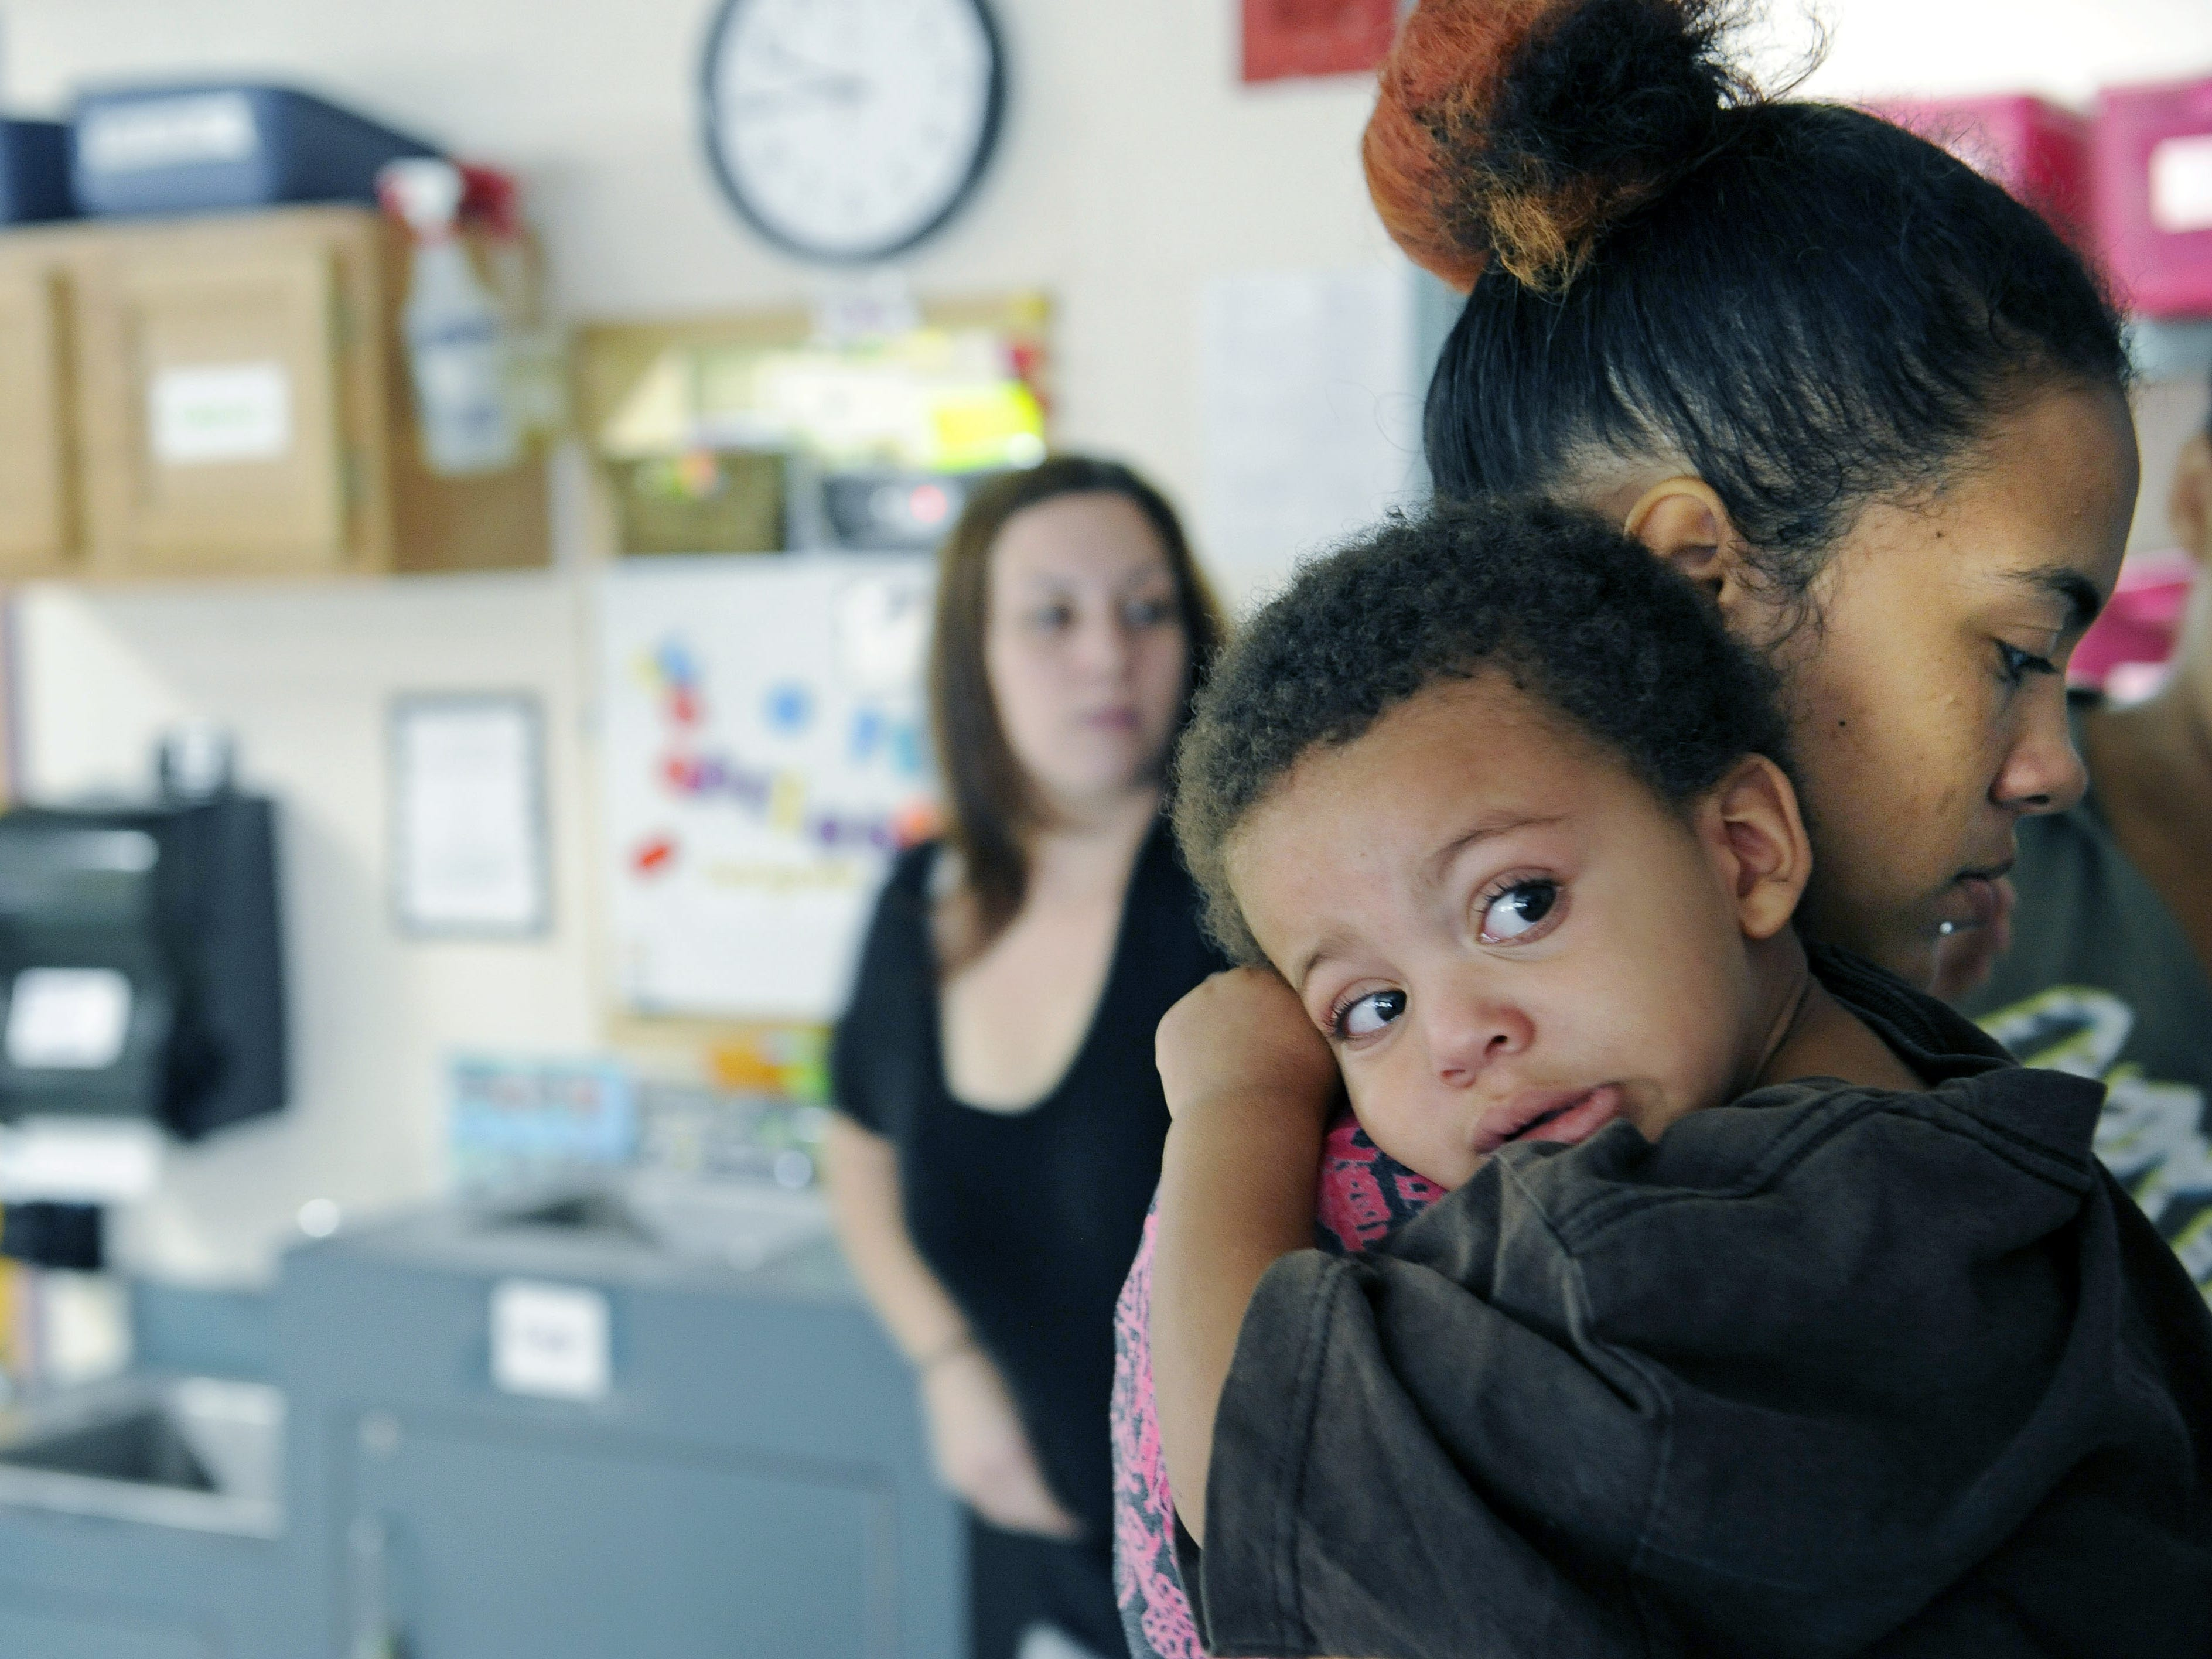 """Satarah Sauls, 23, holds her 2-year-old son, Nolan, as she brings him into the day care at the Martha O'Bryan Center before class Aug. 18, 2012. Sauls has lived in James A. Cayce Homes for about six months and says the Tied Together class taught her to commit to being her son's """"first teacher."""""""